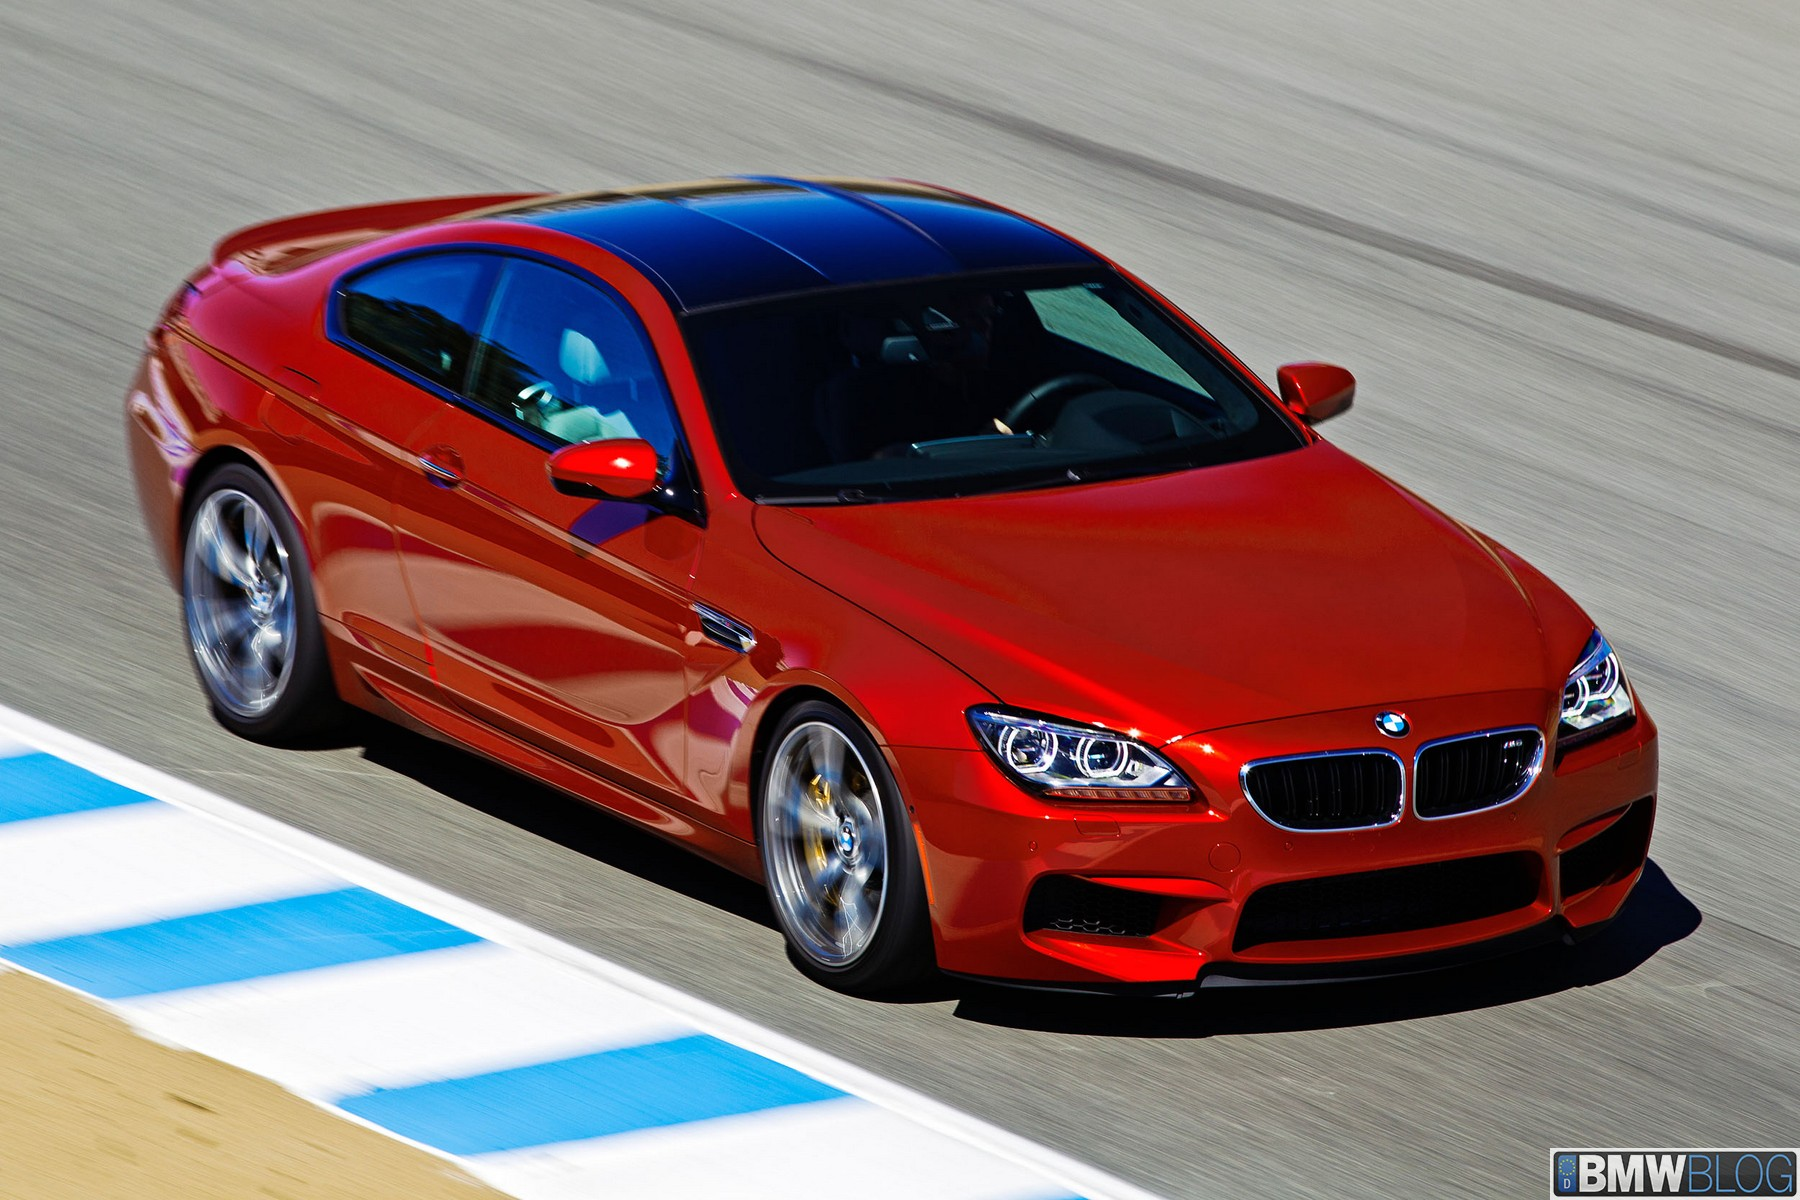 2013 bmw m6 coupe 0922